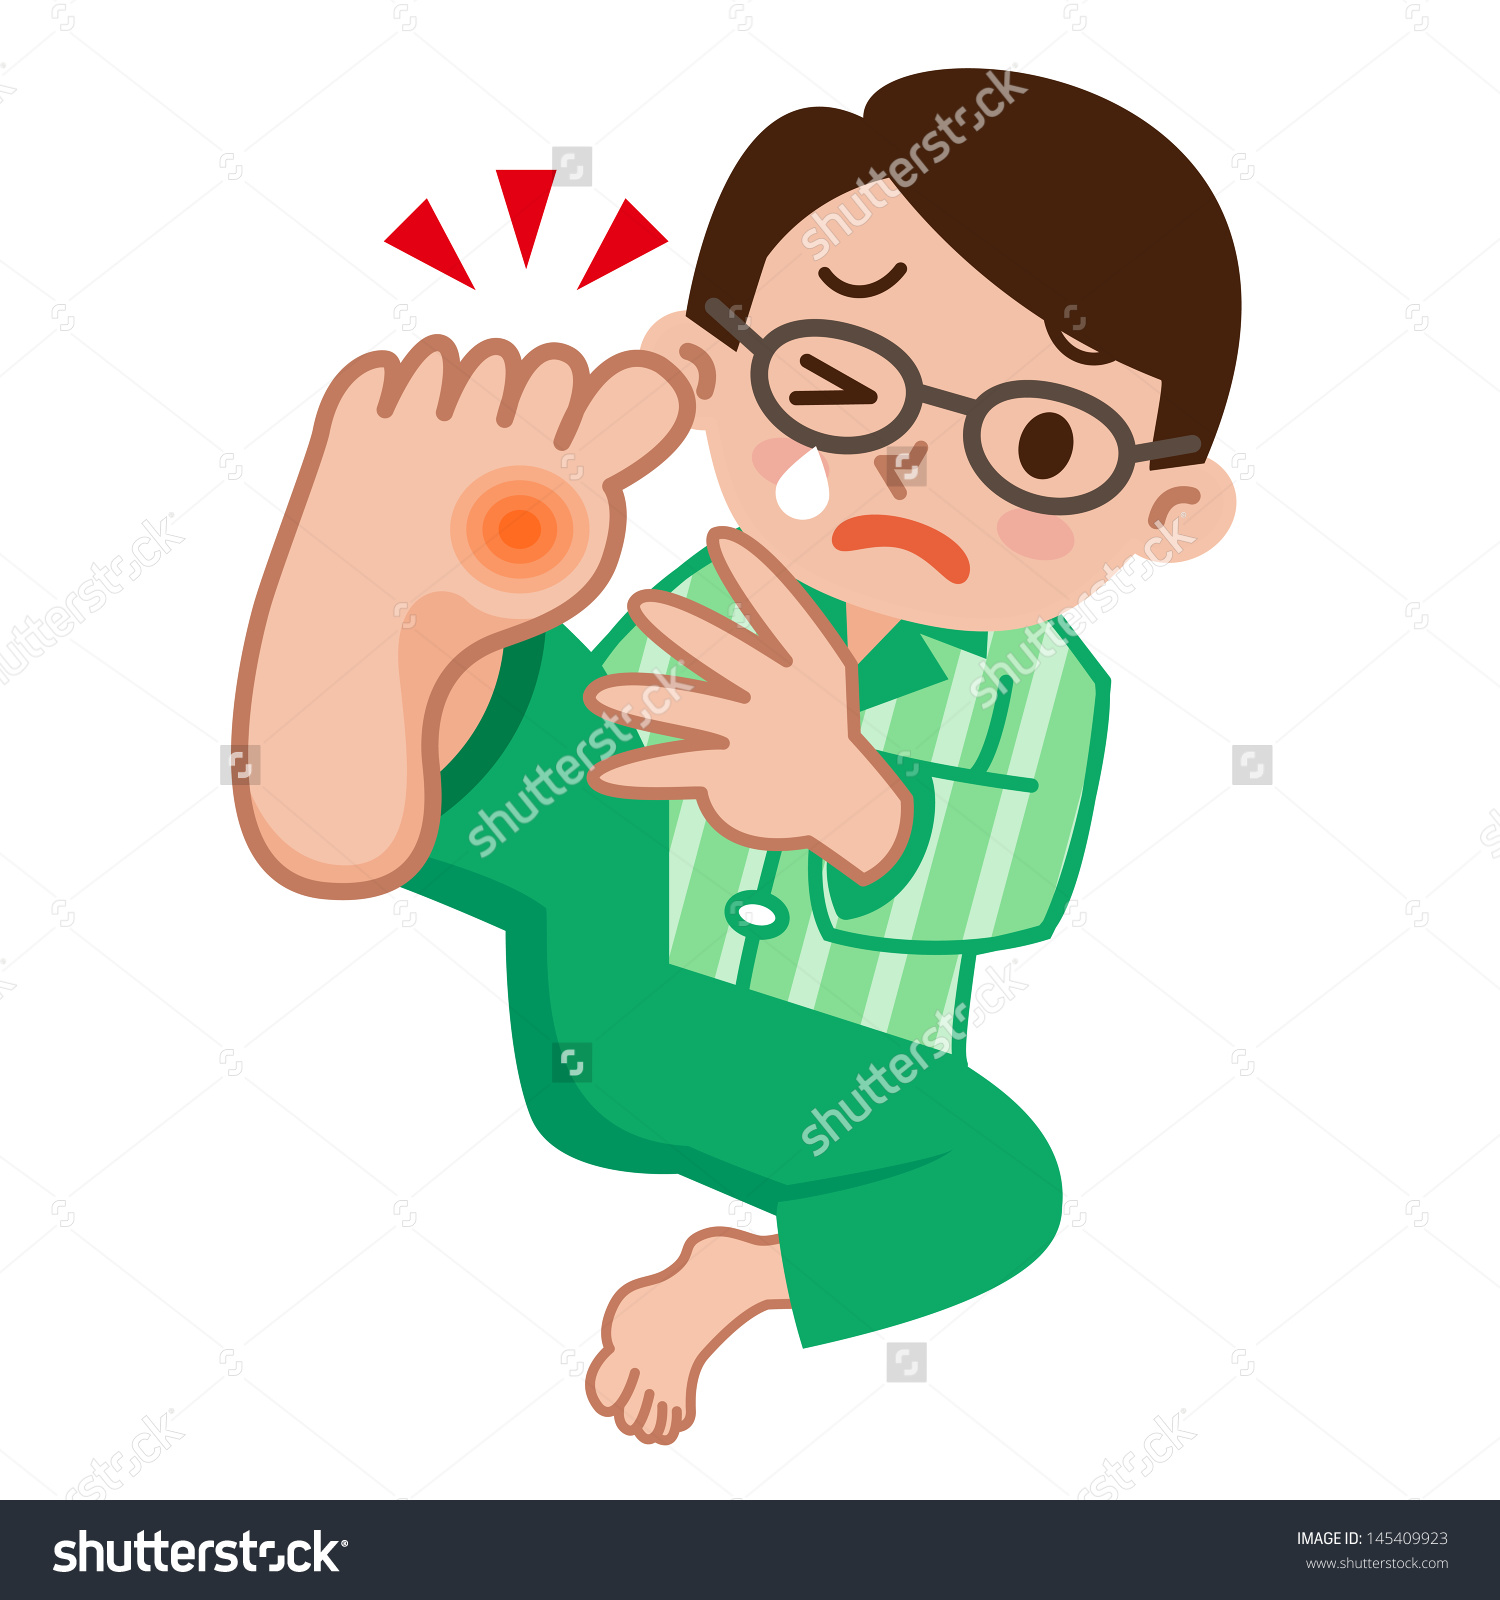 The Gout in Toe Clip Art.